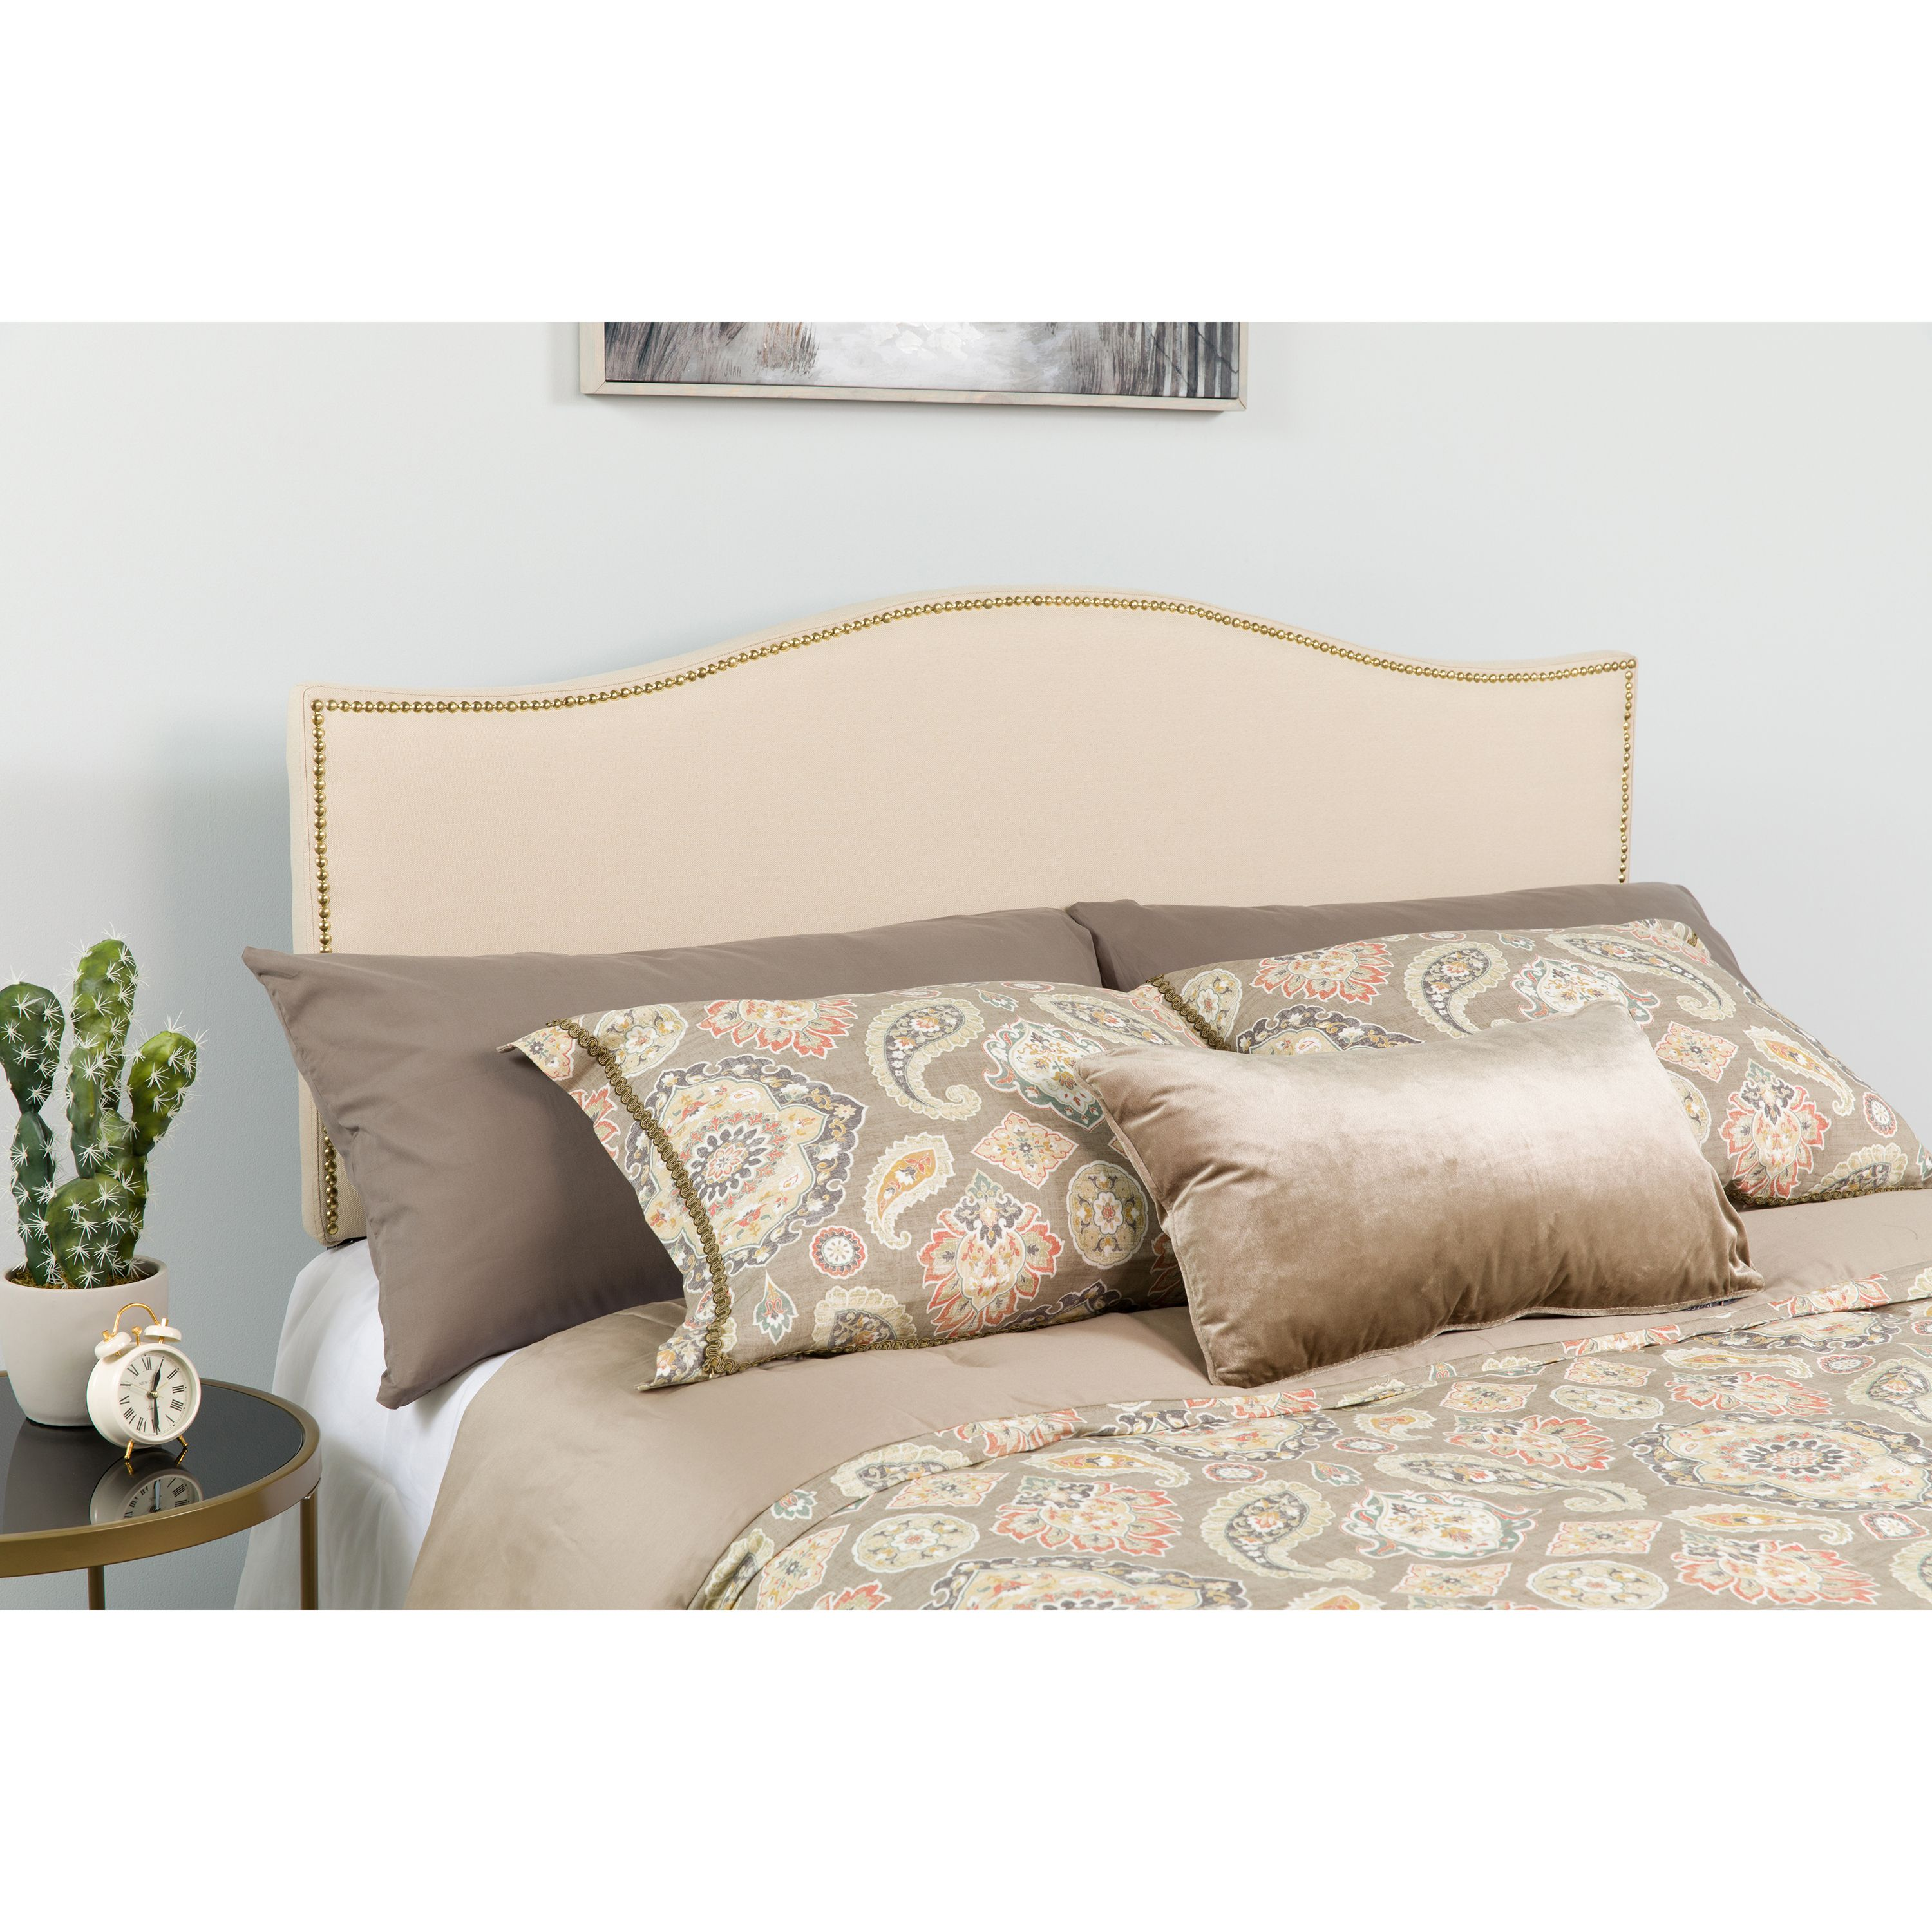 Flash Furniture Lexington Upholstered Queen Size Headboard with Decorative Nail Trim in Beige Fabric